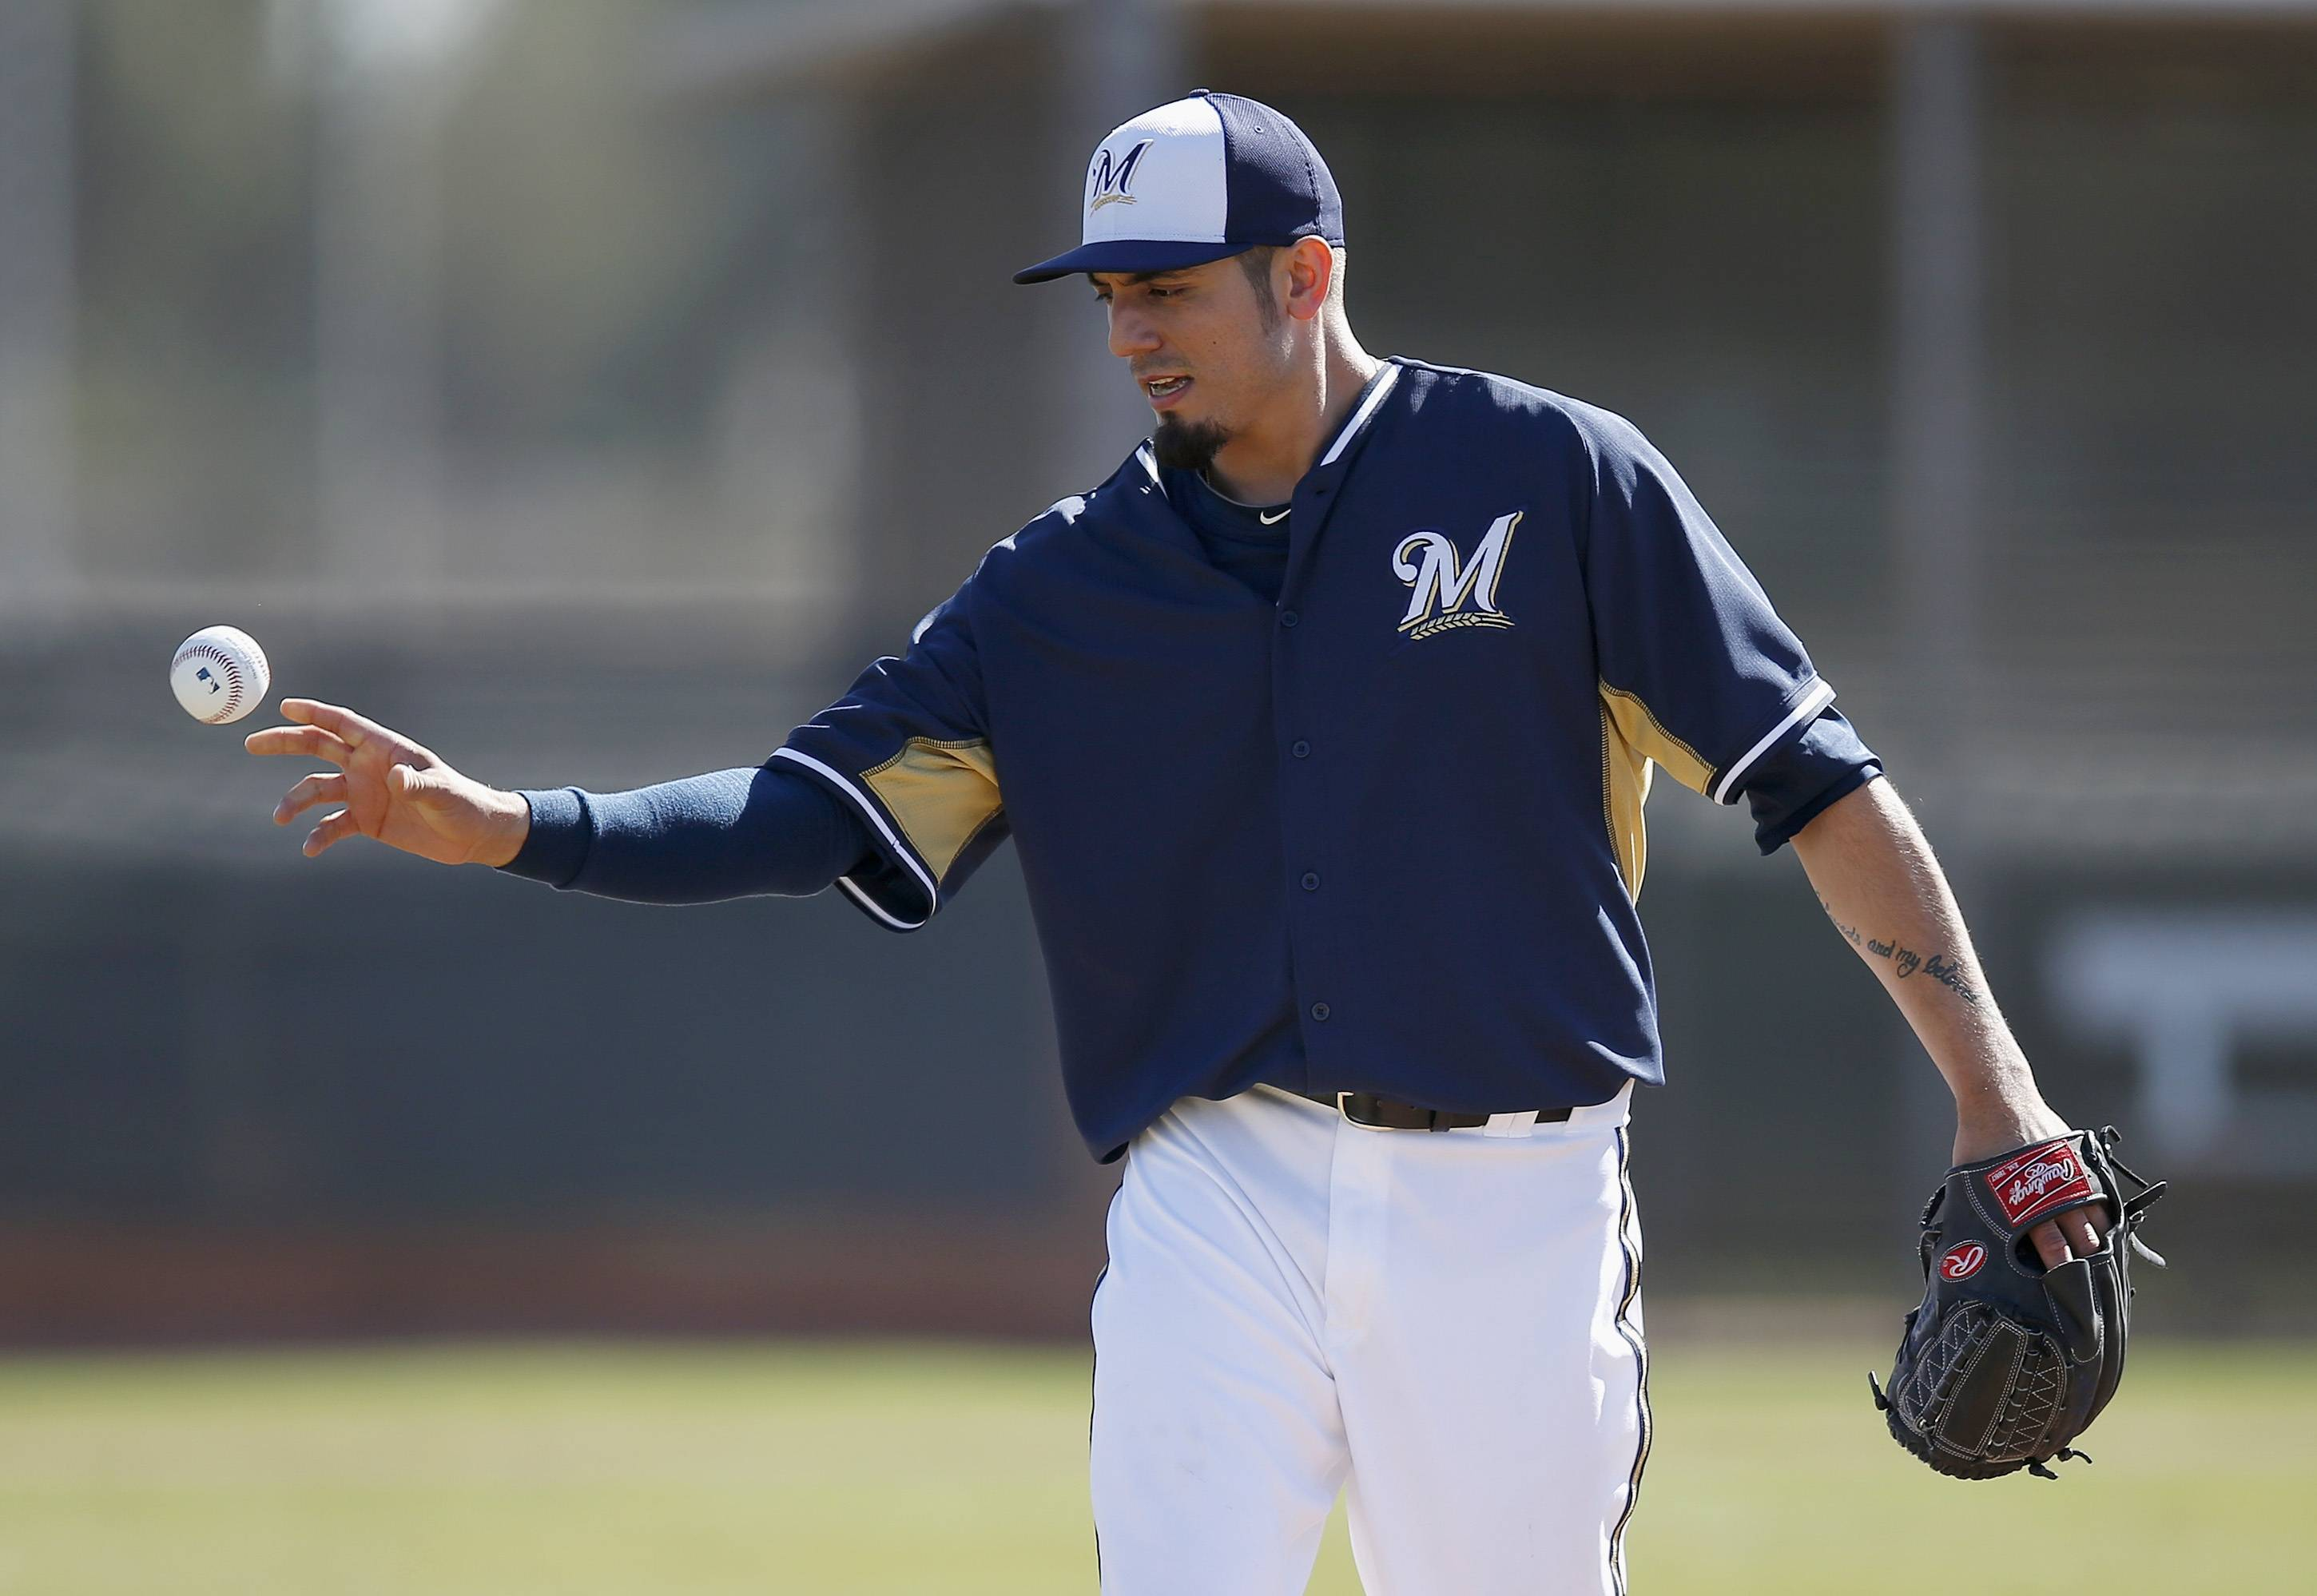 The Brewers' Matt Garza flips a baseball into a bucket after covering first base on an infield grounder during spring training practice Monday in Phoenix.